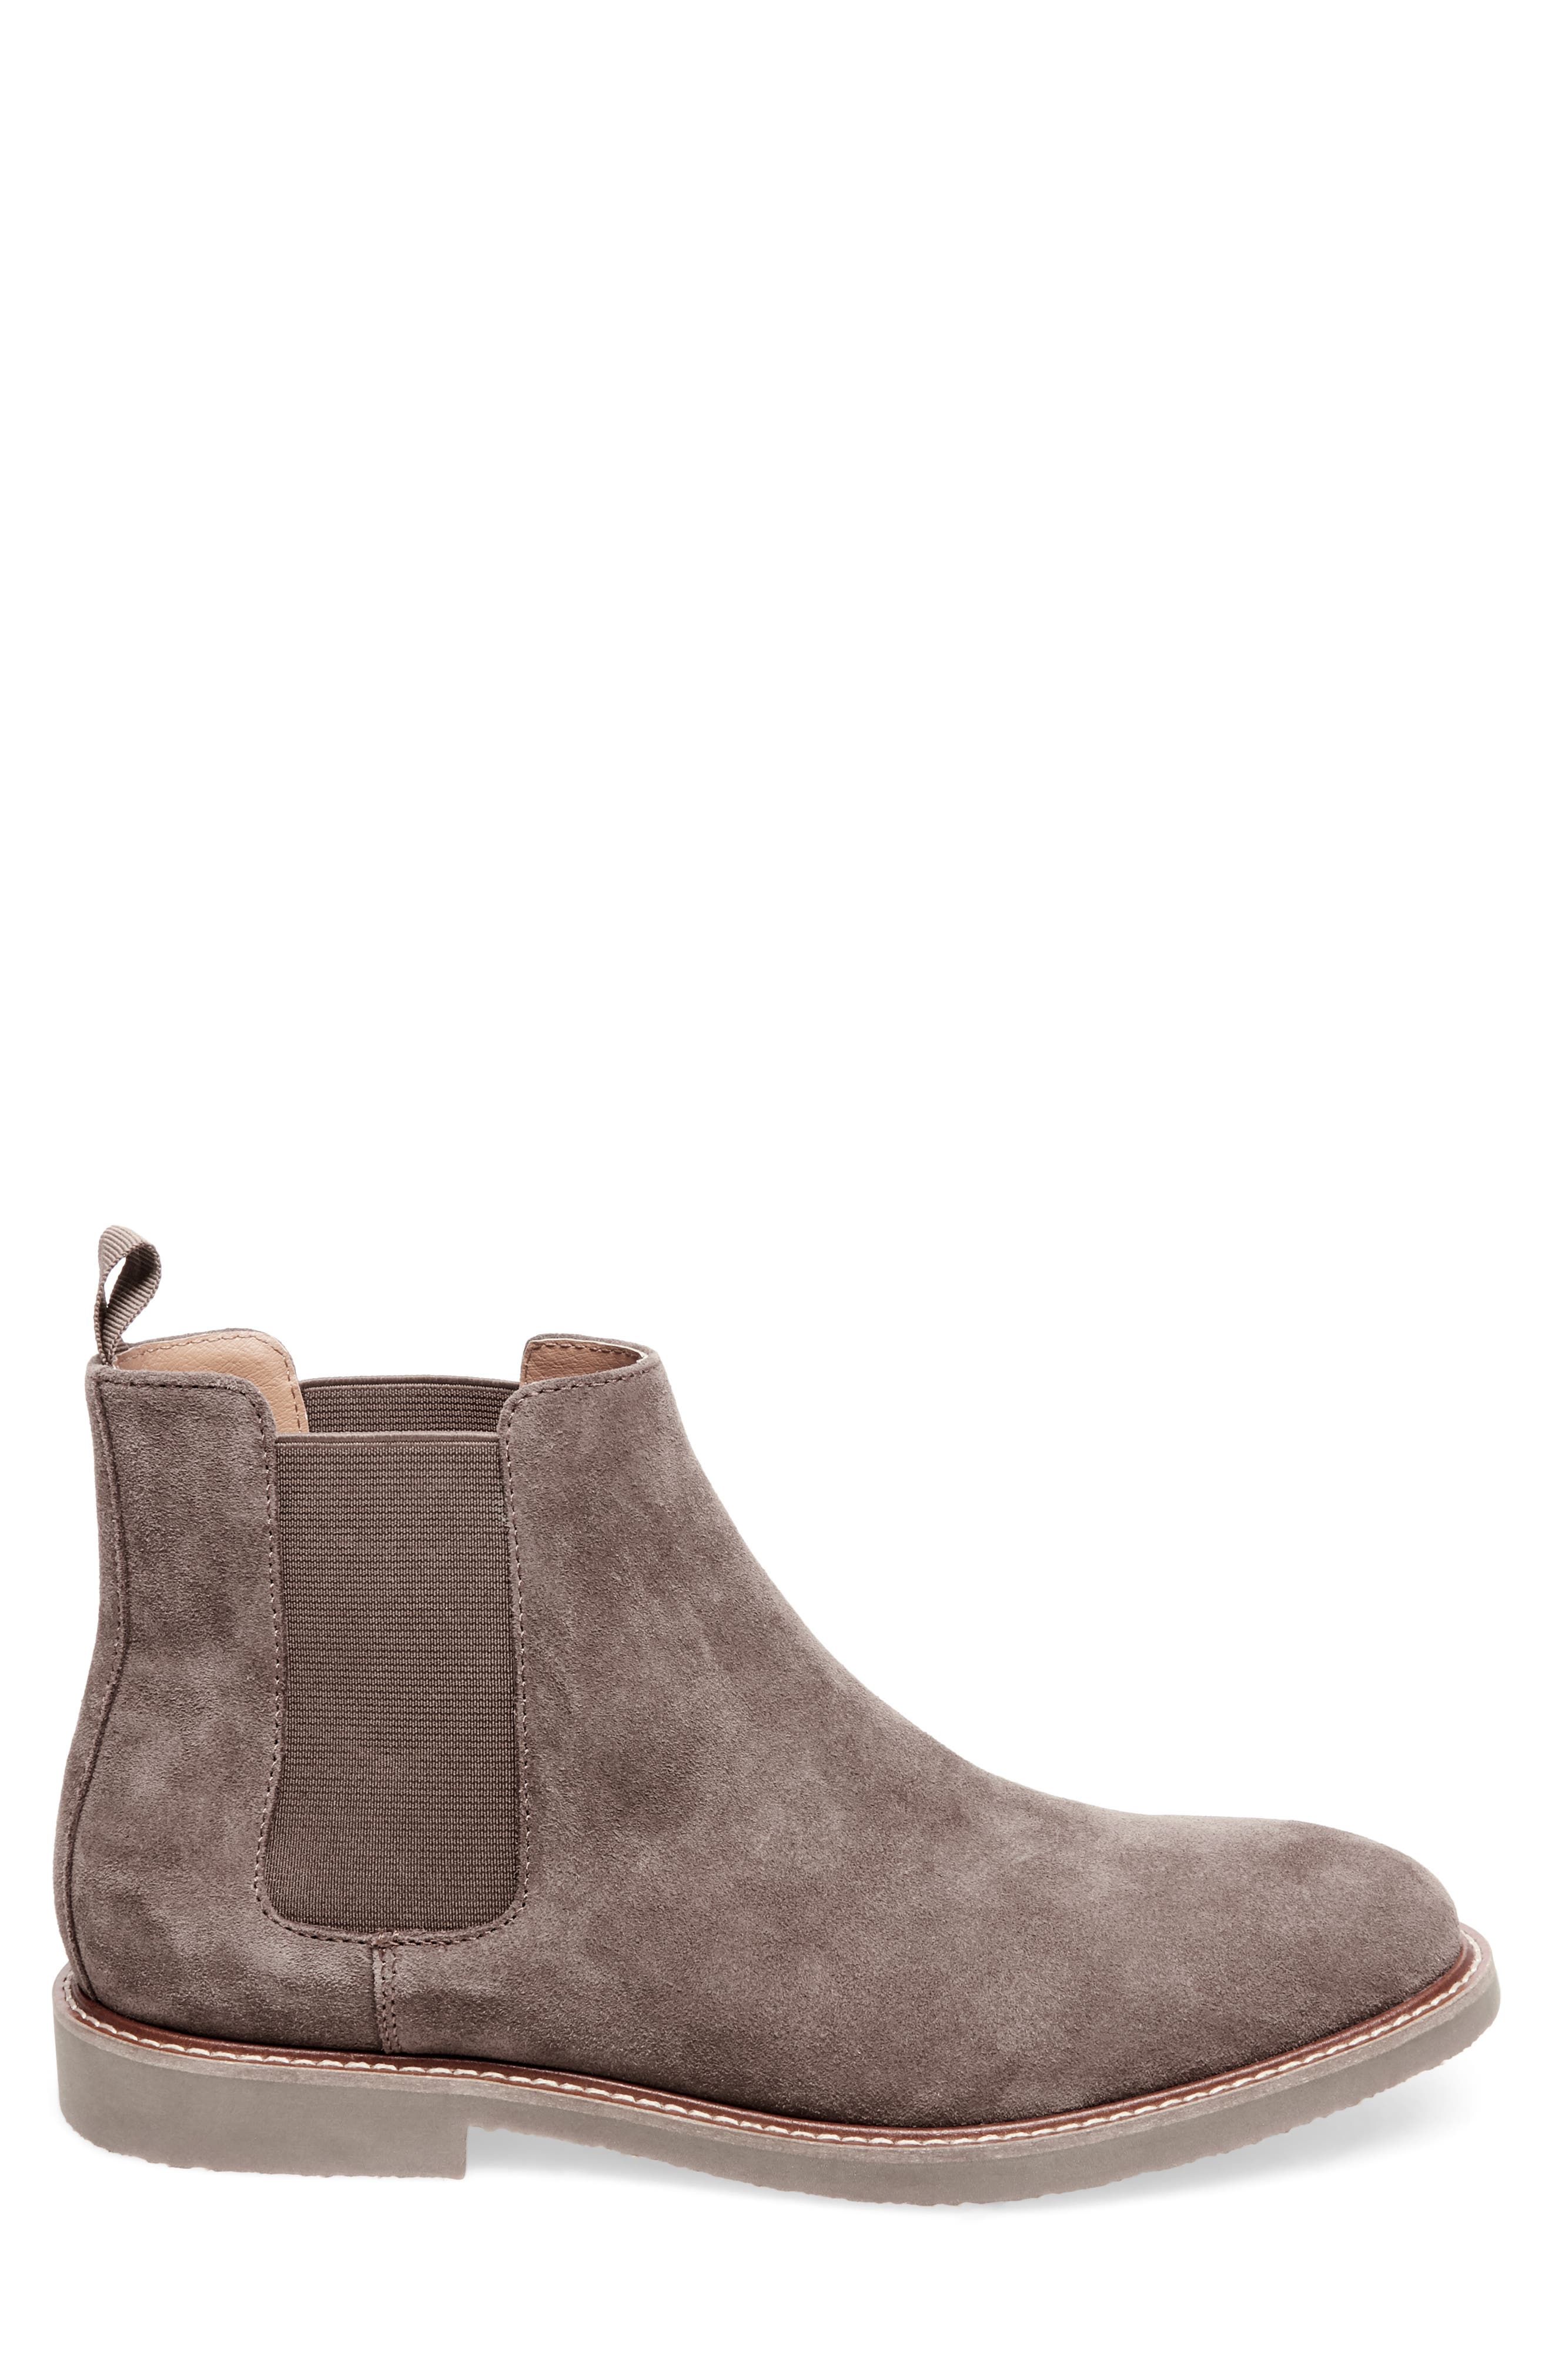 Highline Chelsea Boot,                             Alternate thumbnail 3, color,                             TAUPE SUEDE